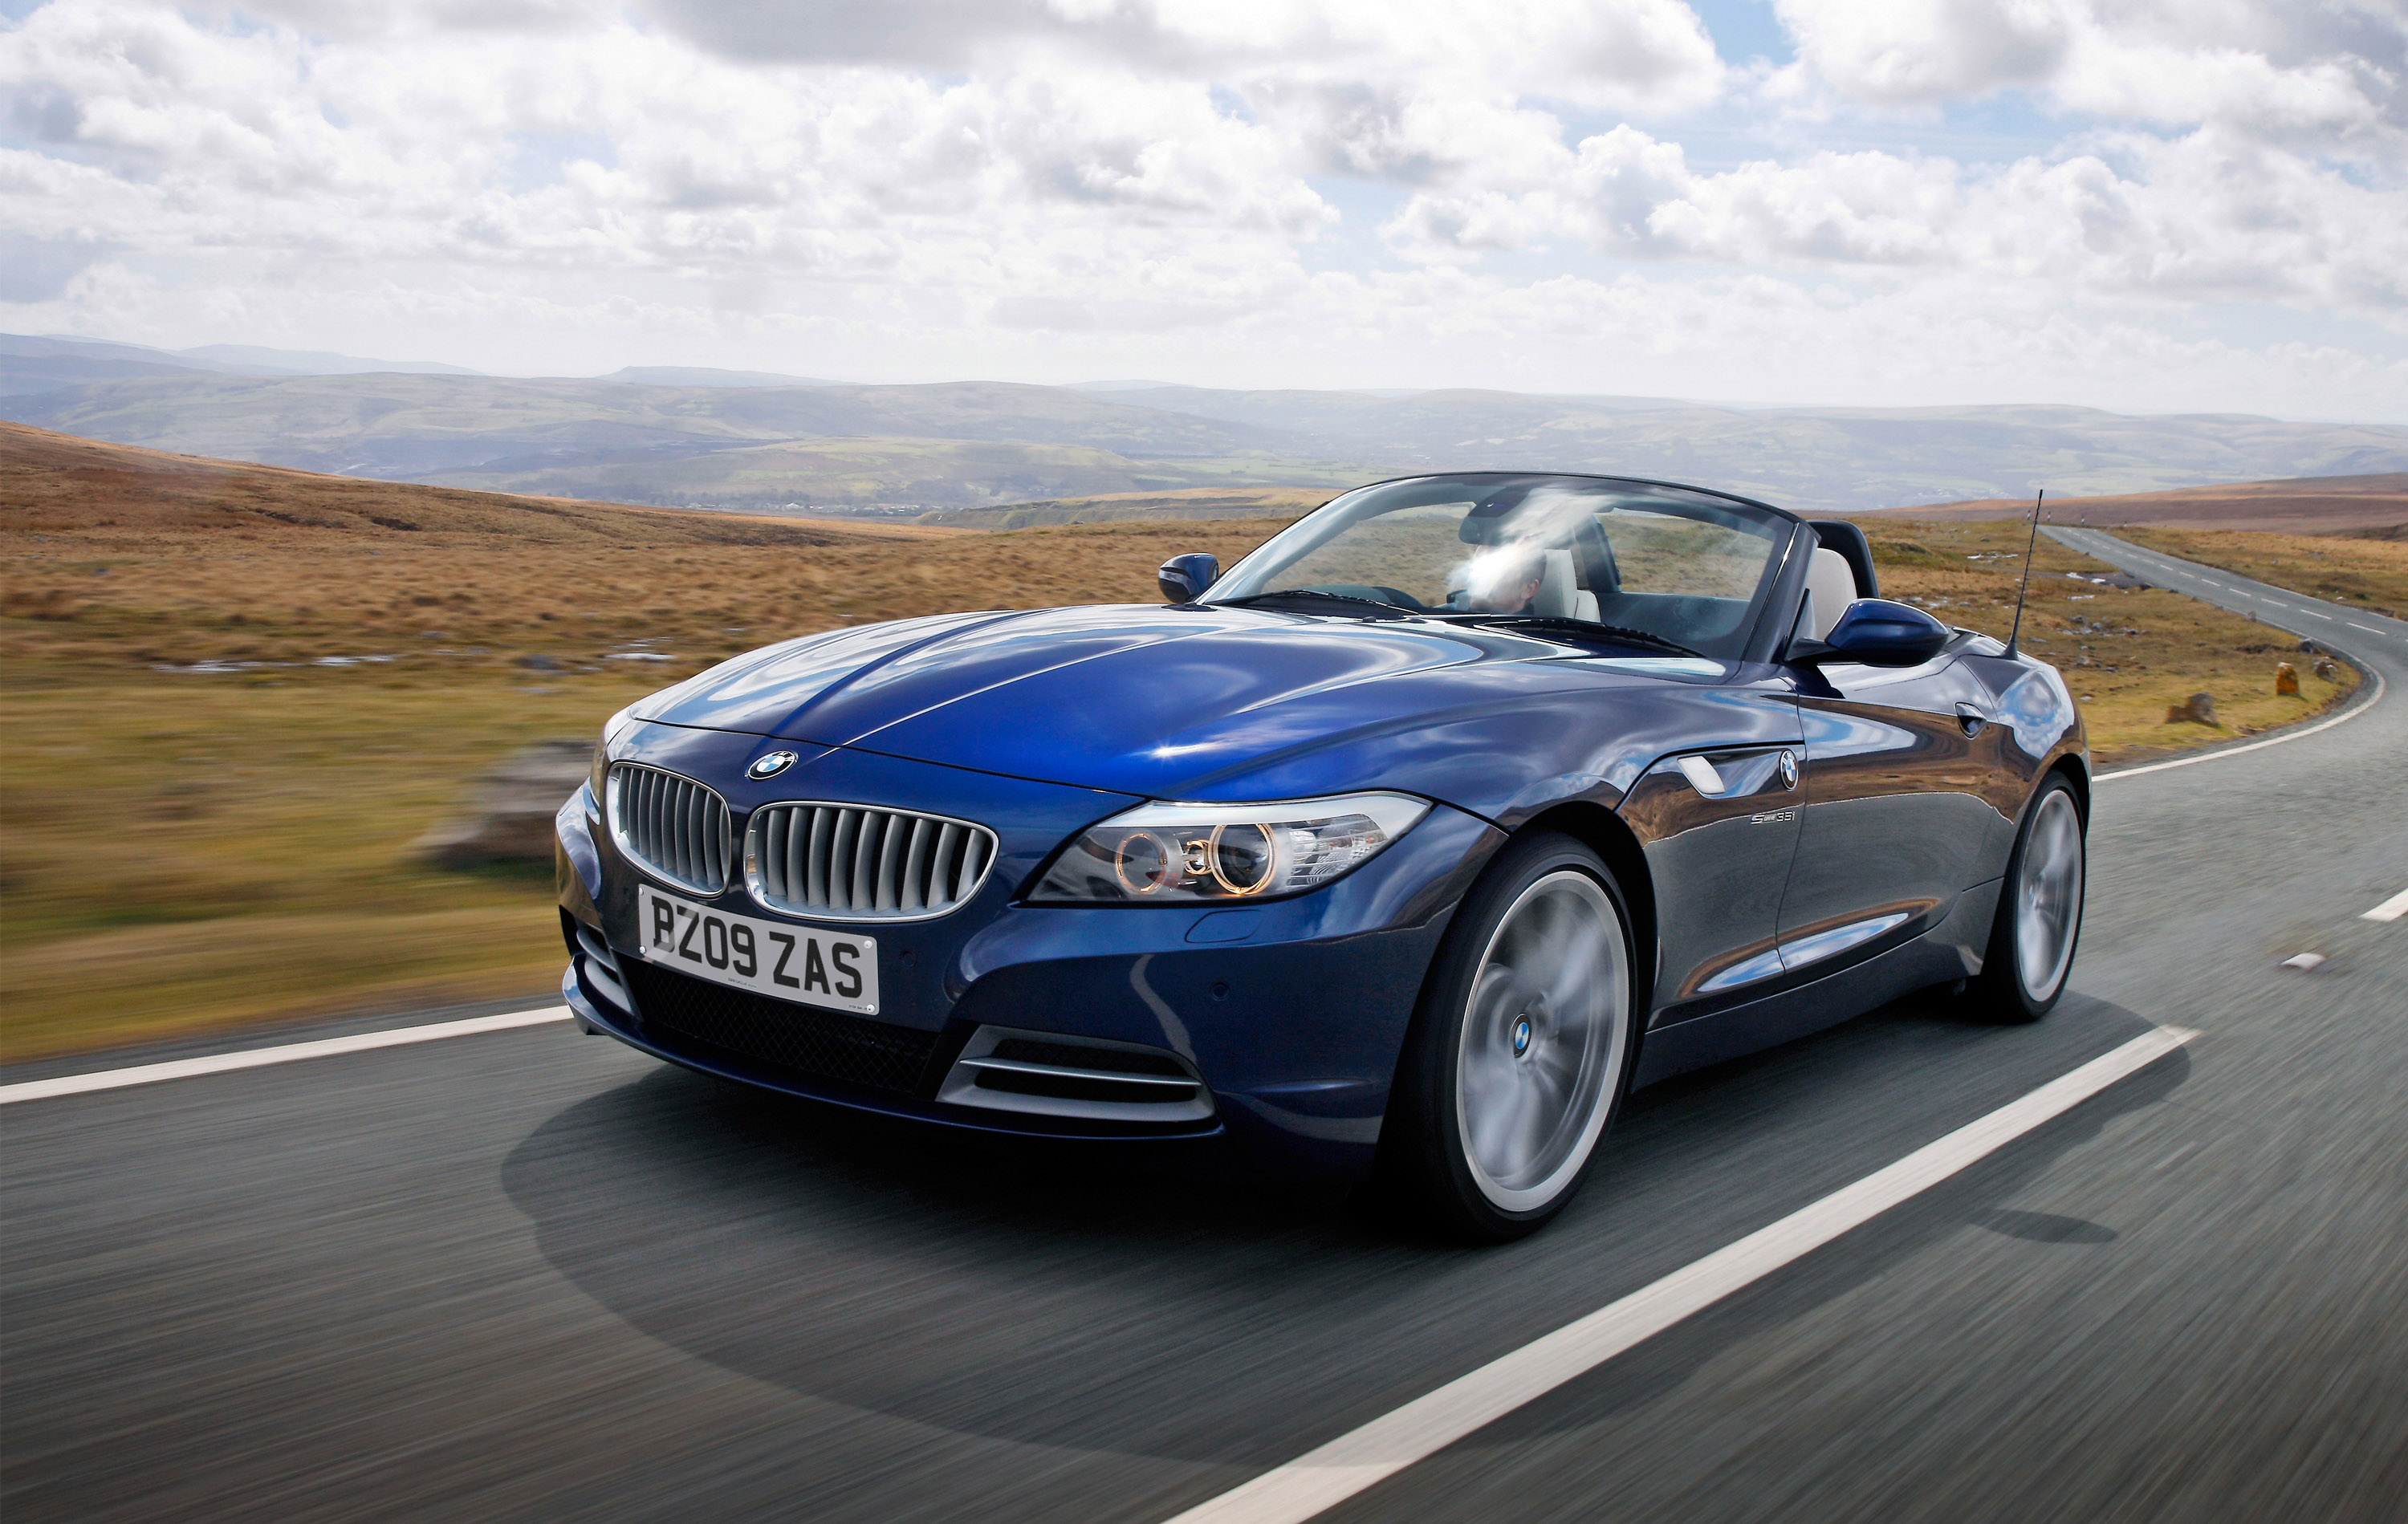 2009 Bmw Z4 Picture 38990